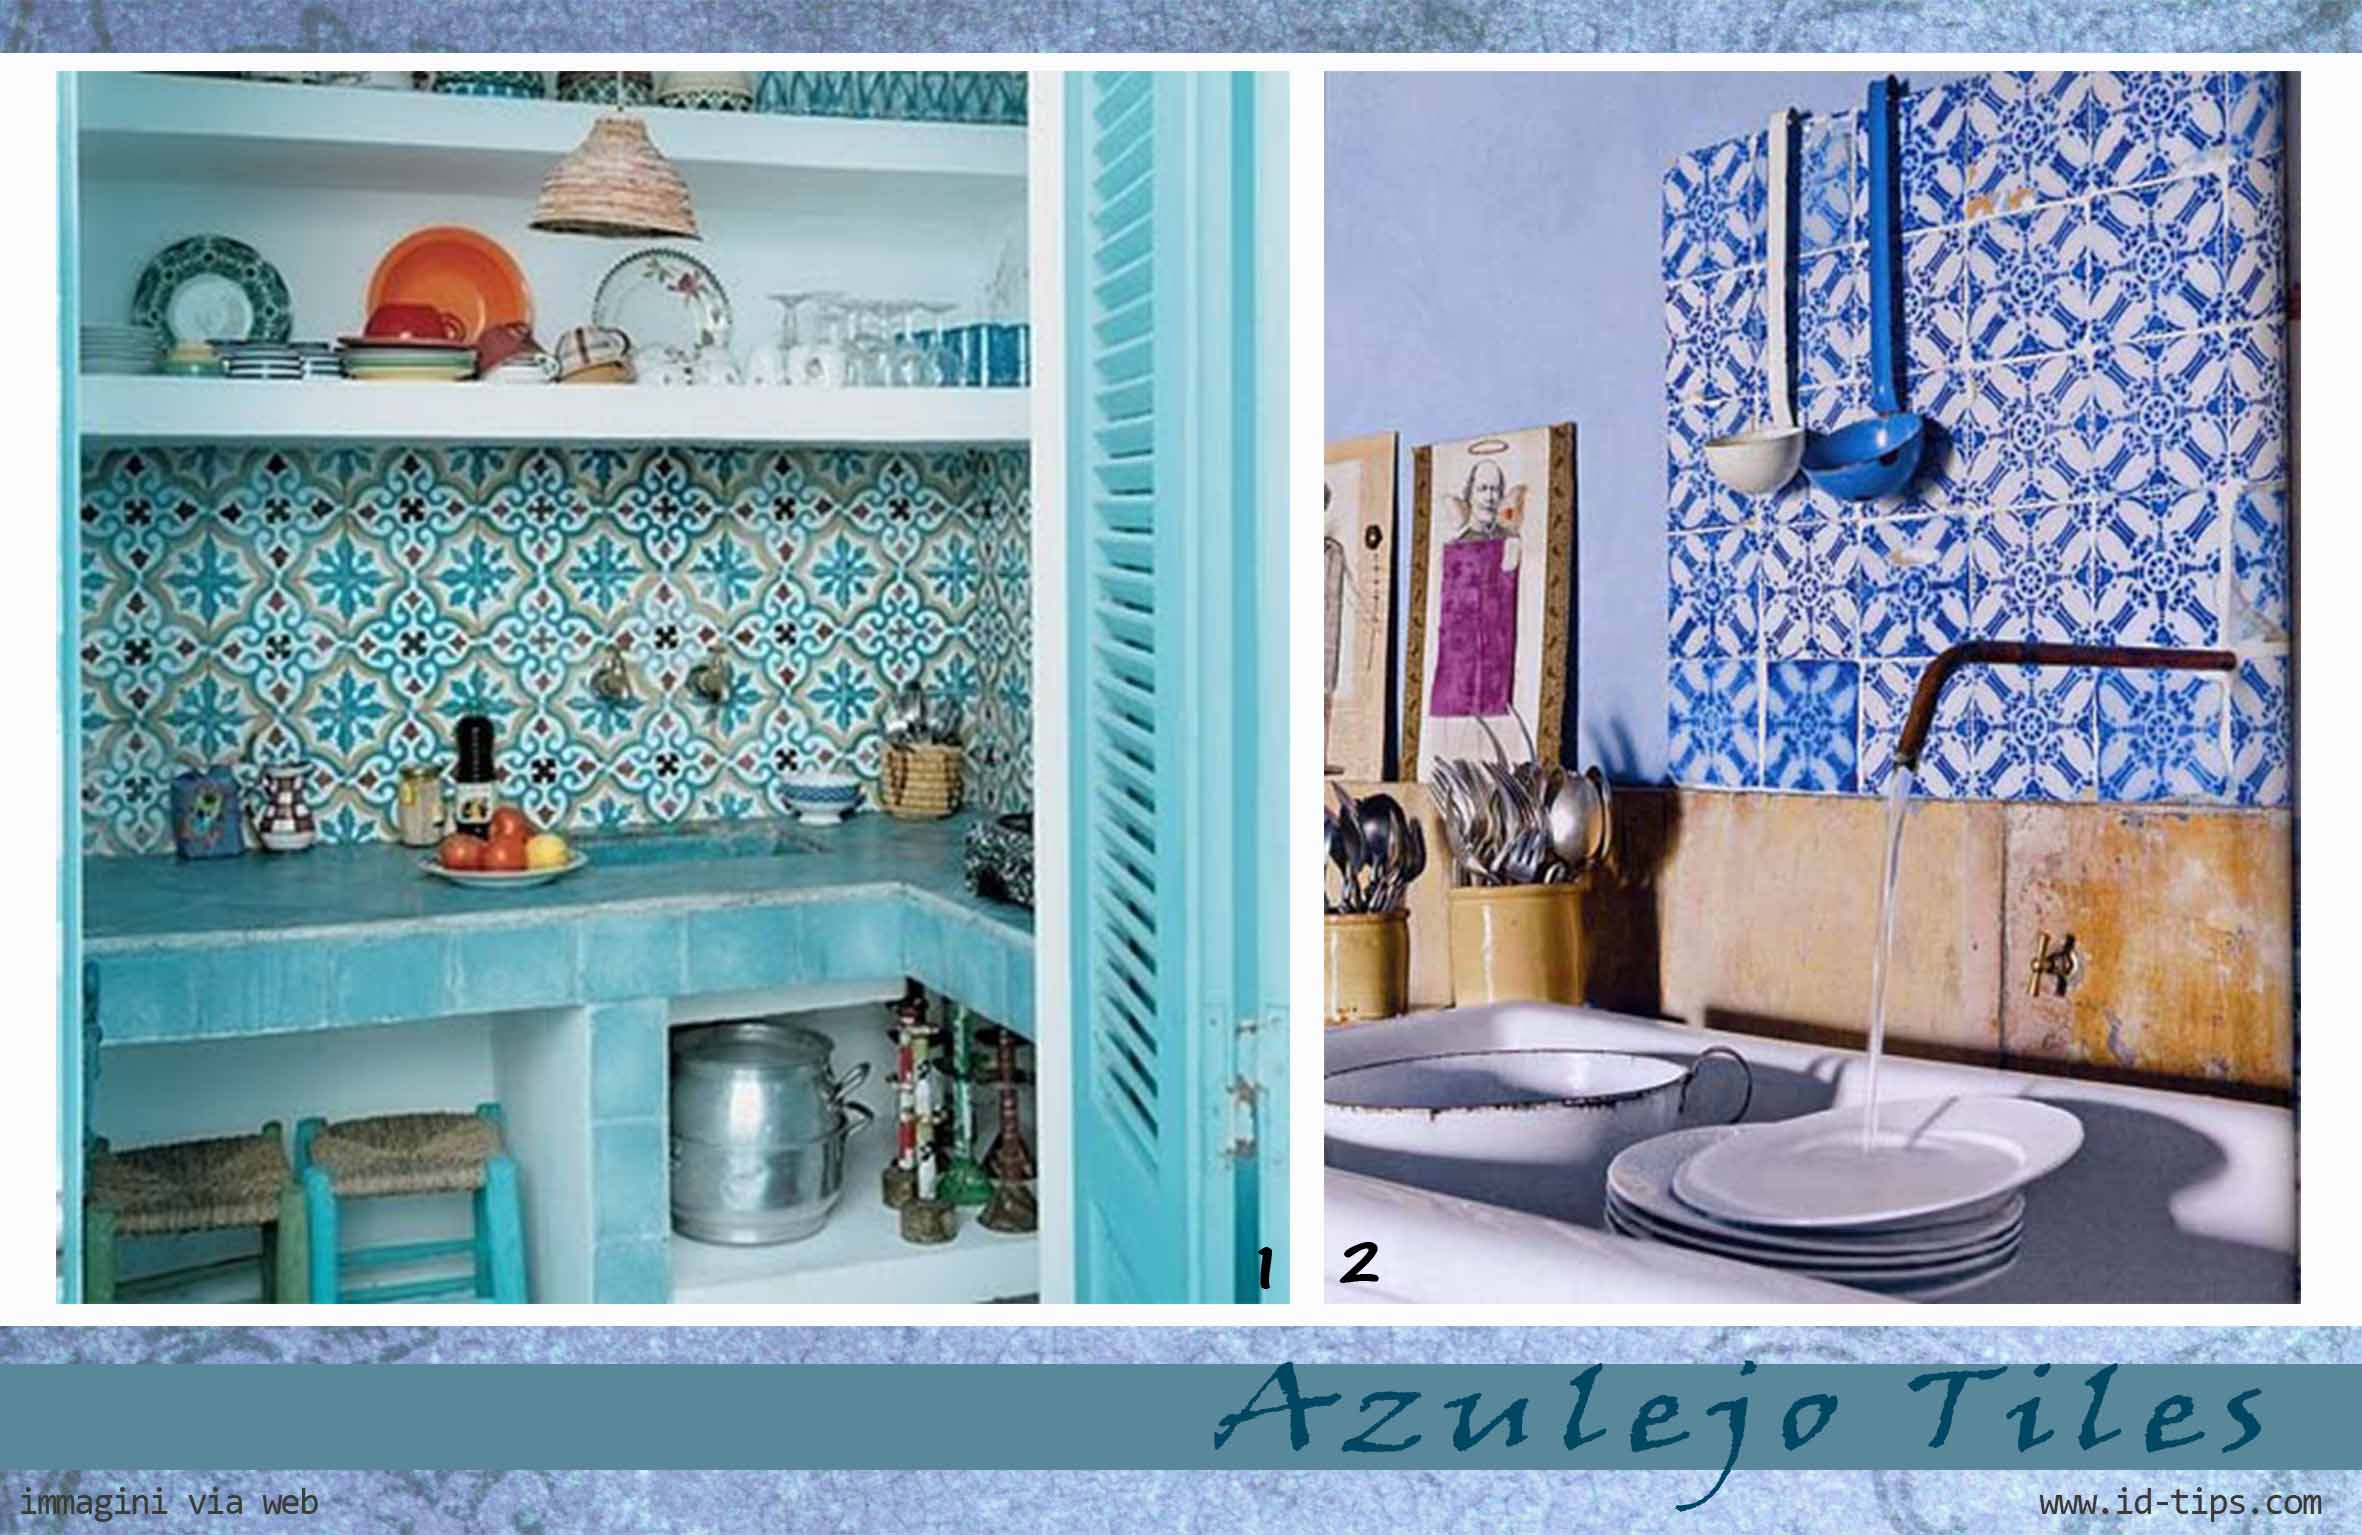 Piastrelle Cucina Azulejos.Azulejo Tiles Id Tips Interior Design Tips Blog